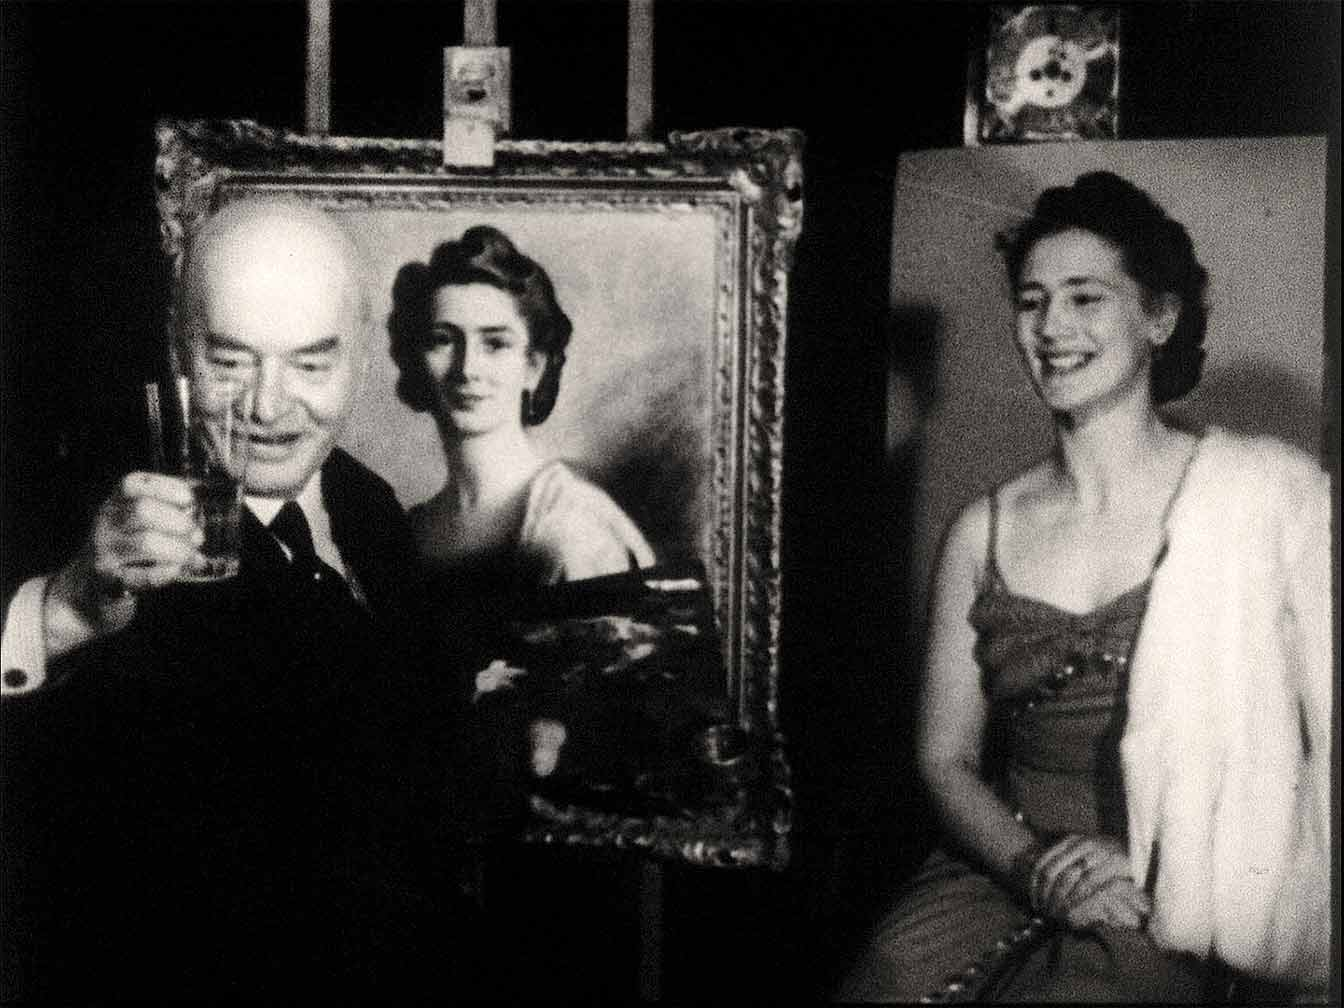 Making The Immortal, film still, Bror Kronstrand and woman in his studio.